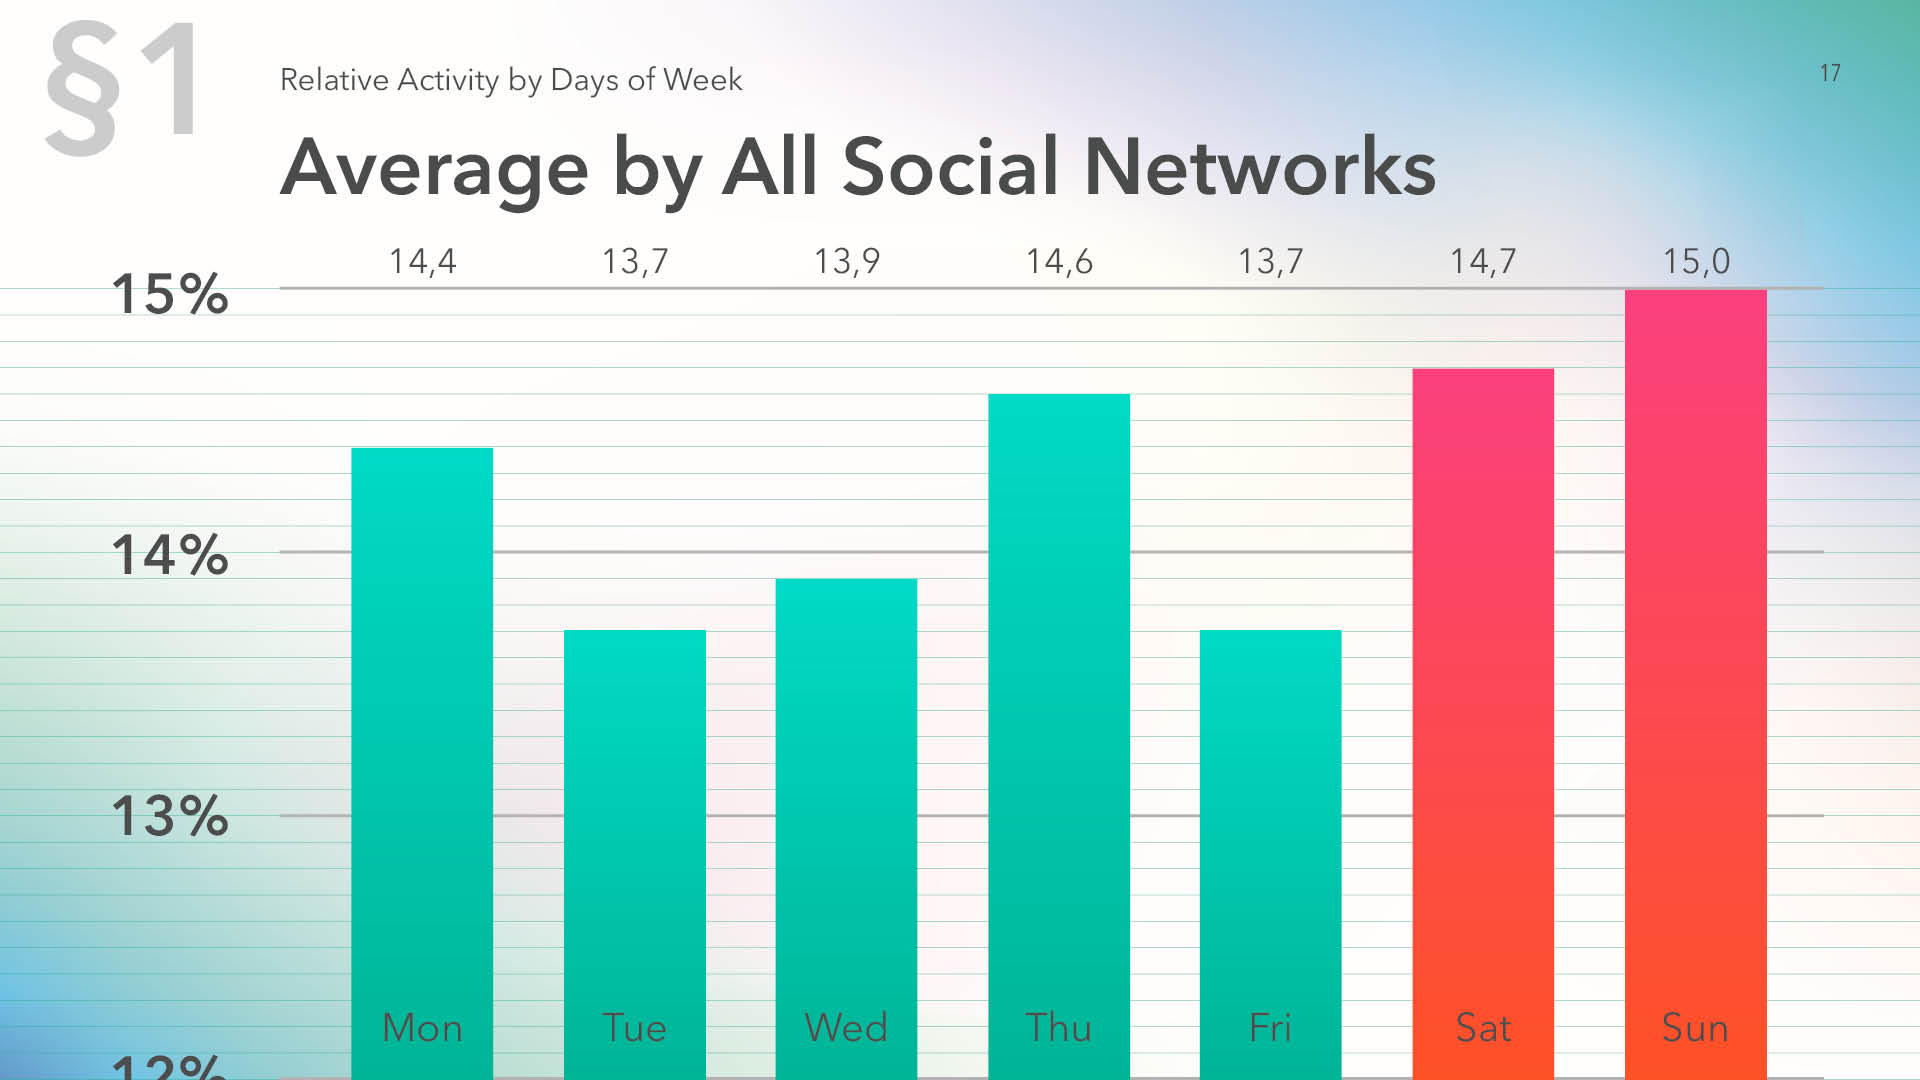 Average relative activity by days of week by all social media's for 2019